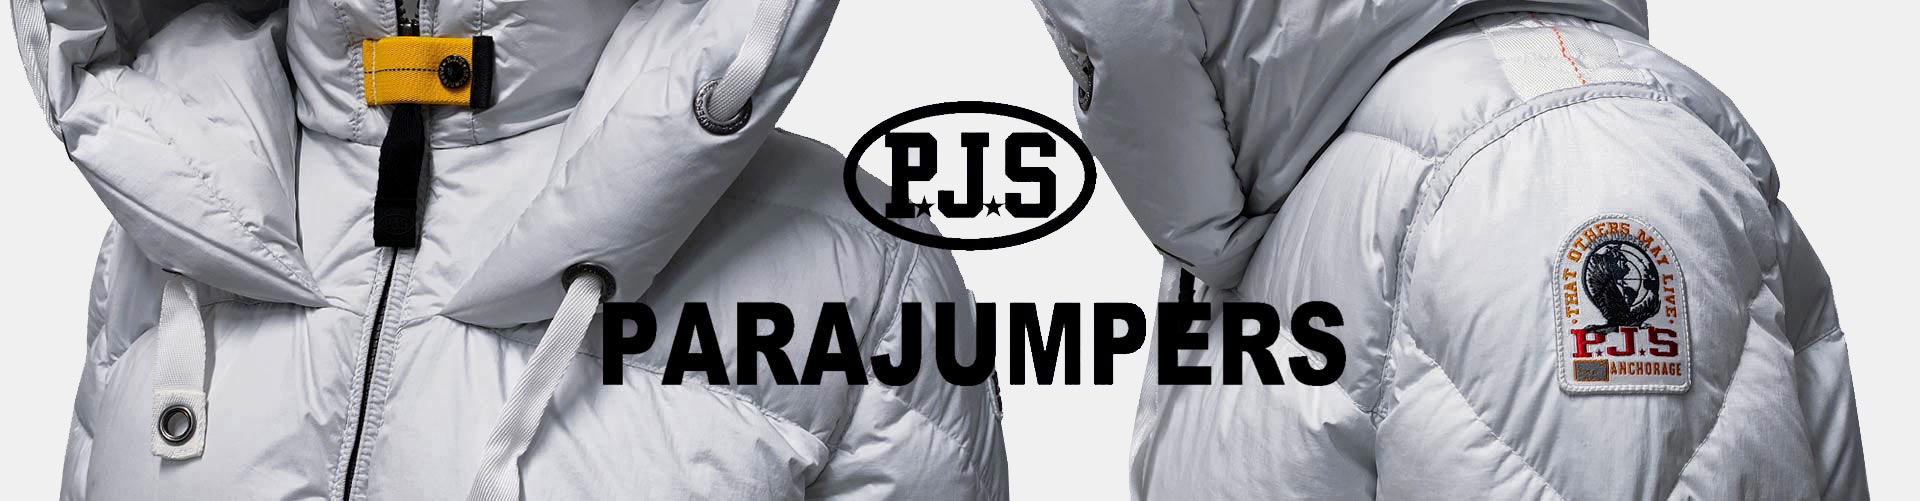 Parajumpers online